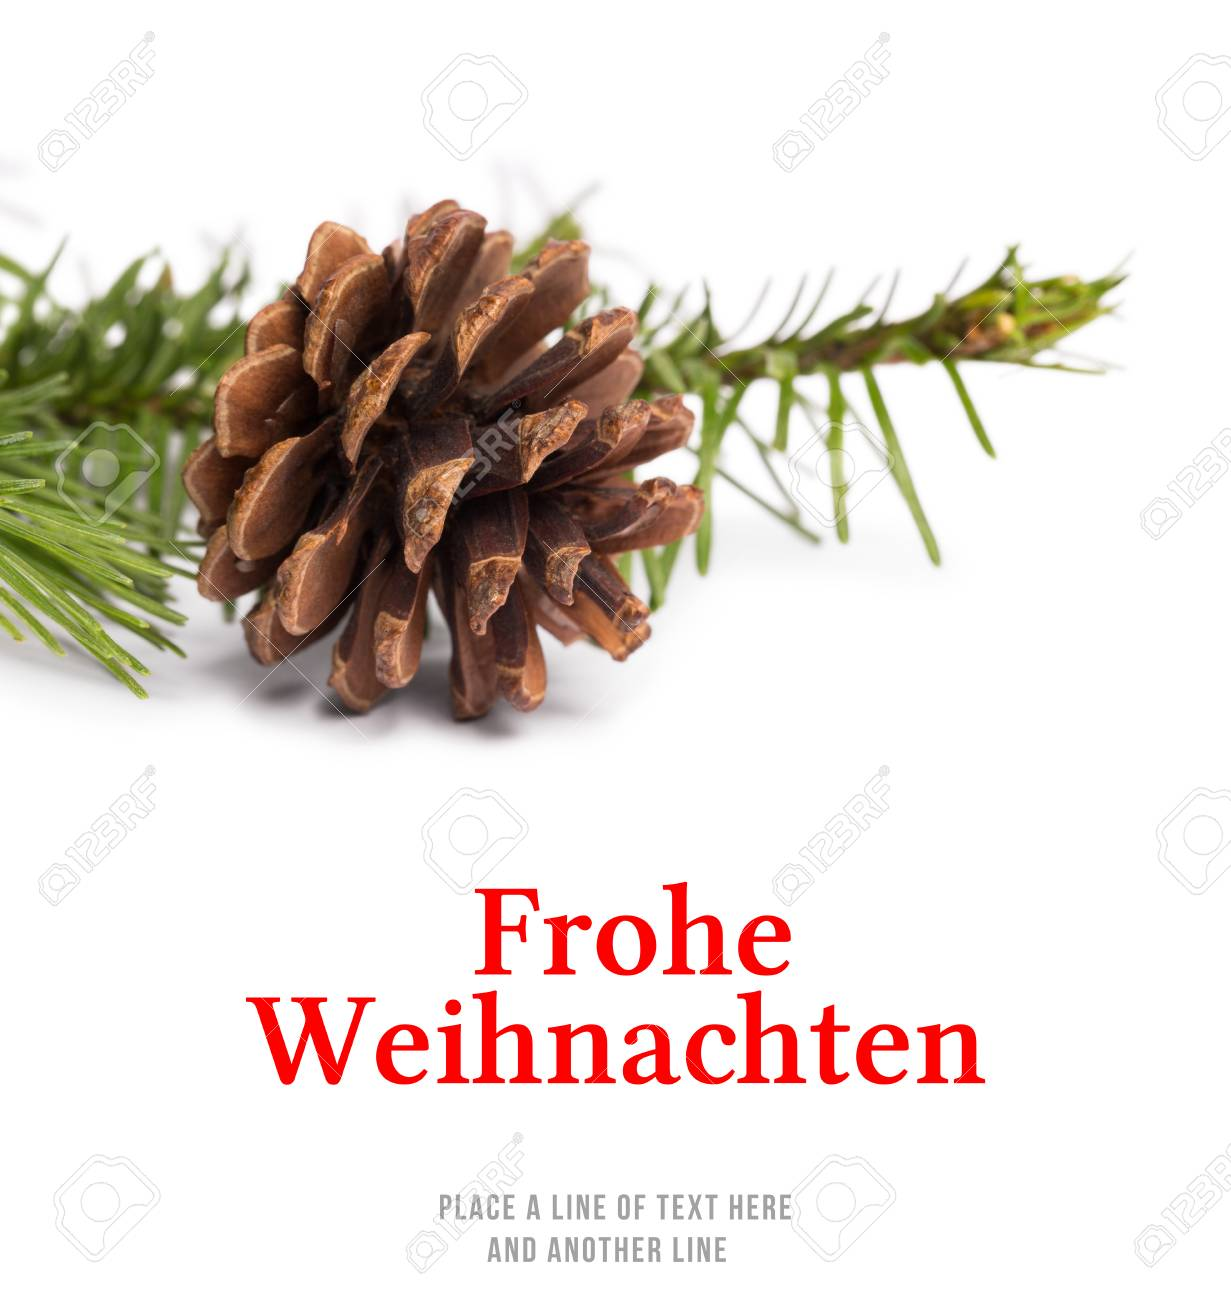 Christmas Greeting In German Against Brown Pine Cone With Fir